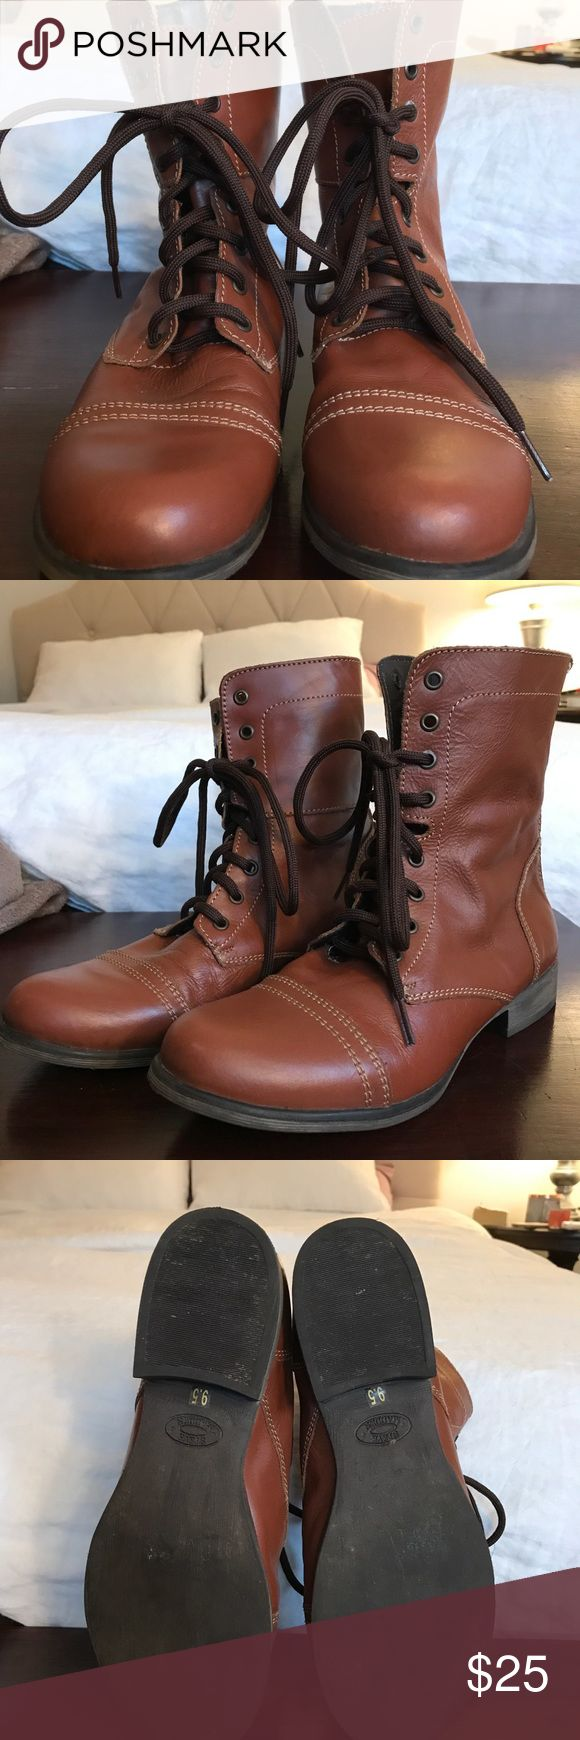 Steve Madden brown leather combat boots, size 9.5 Steve Madden brown leather combat boots, size 9.5 for sale Steve Madden Shoes Combat & Moto Boots